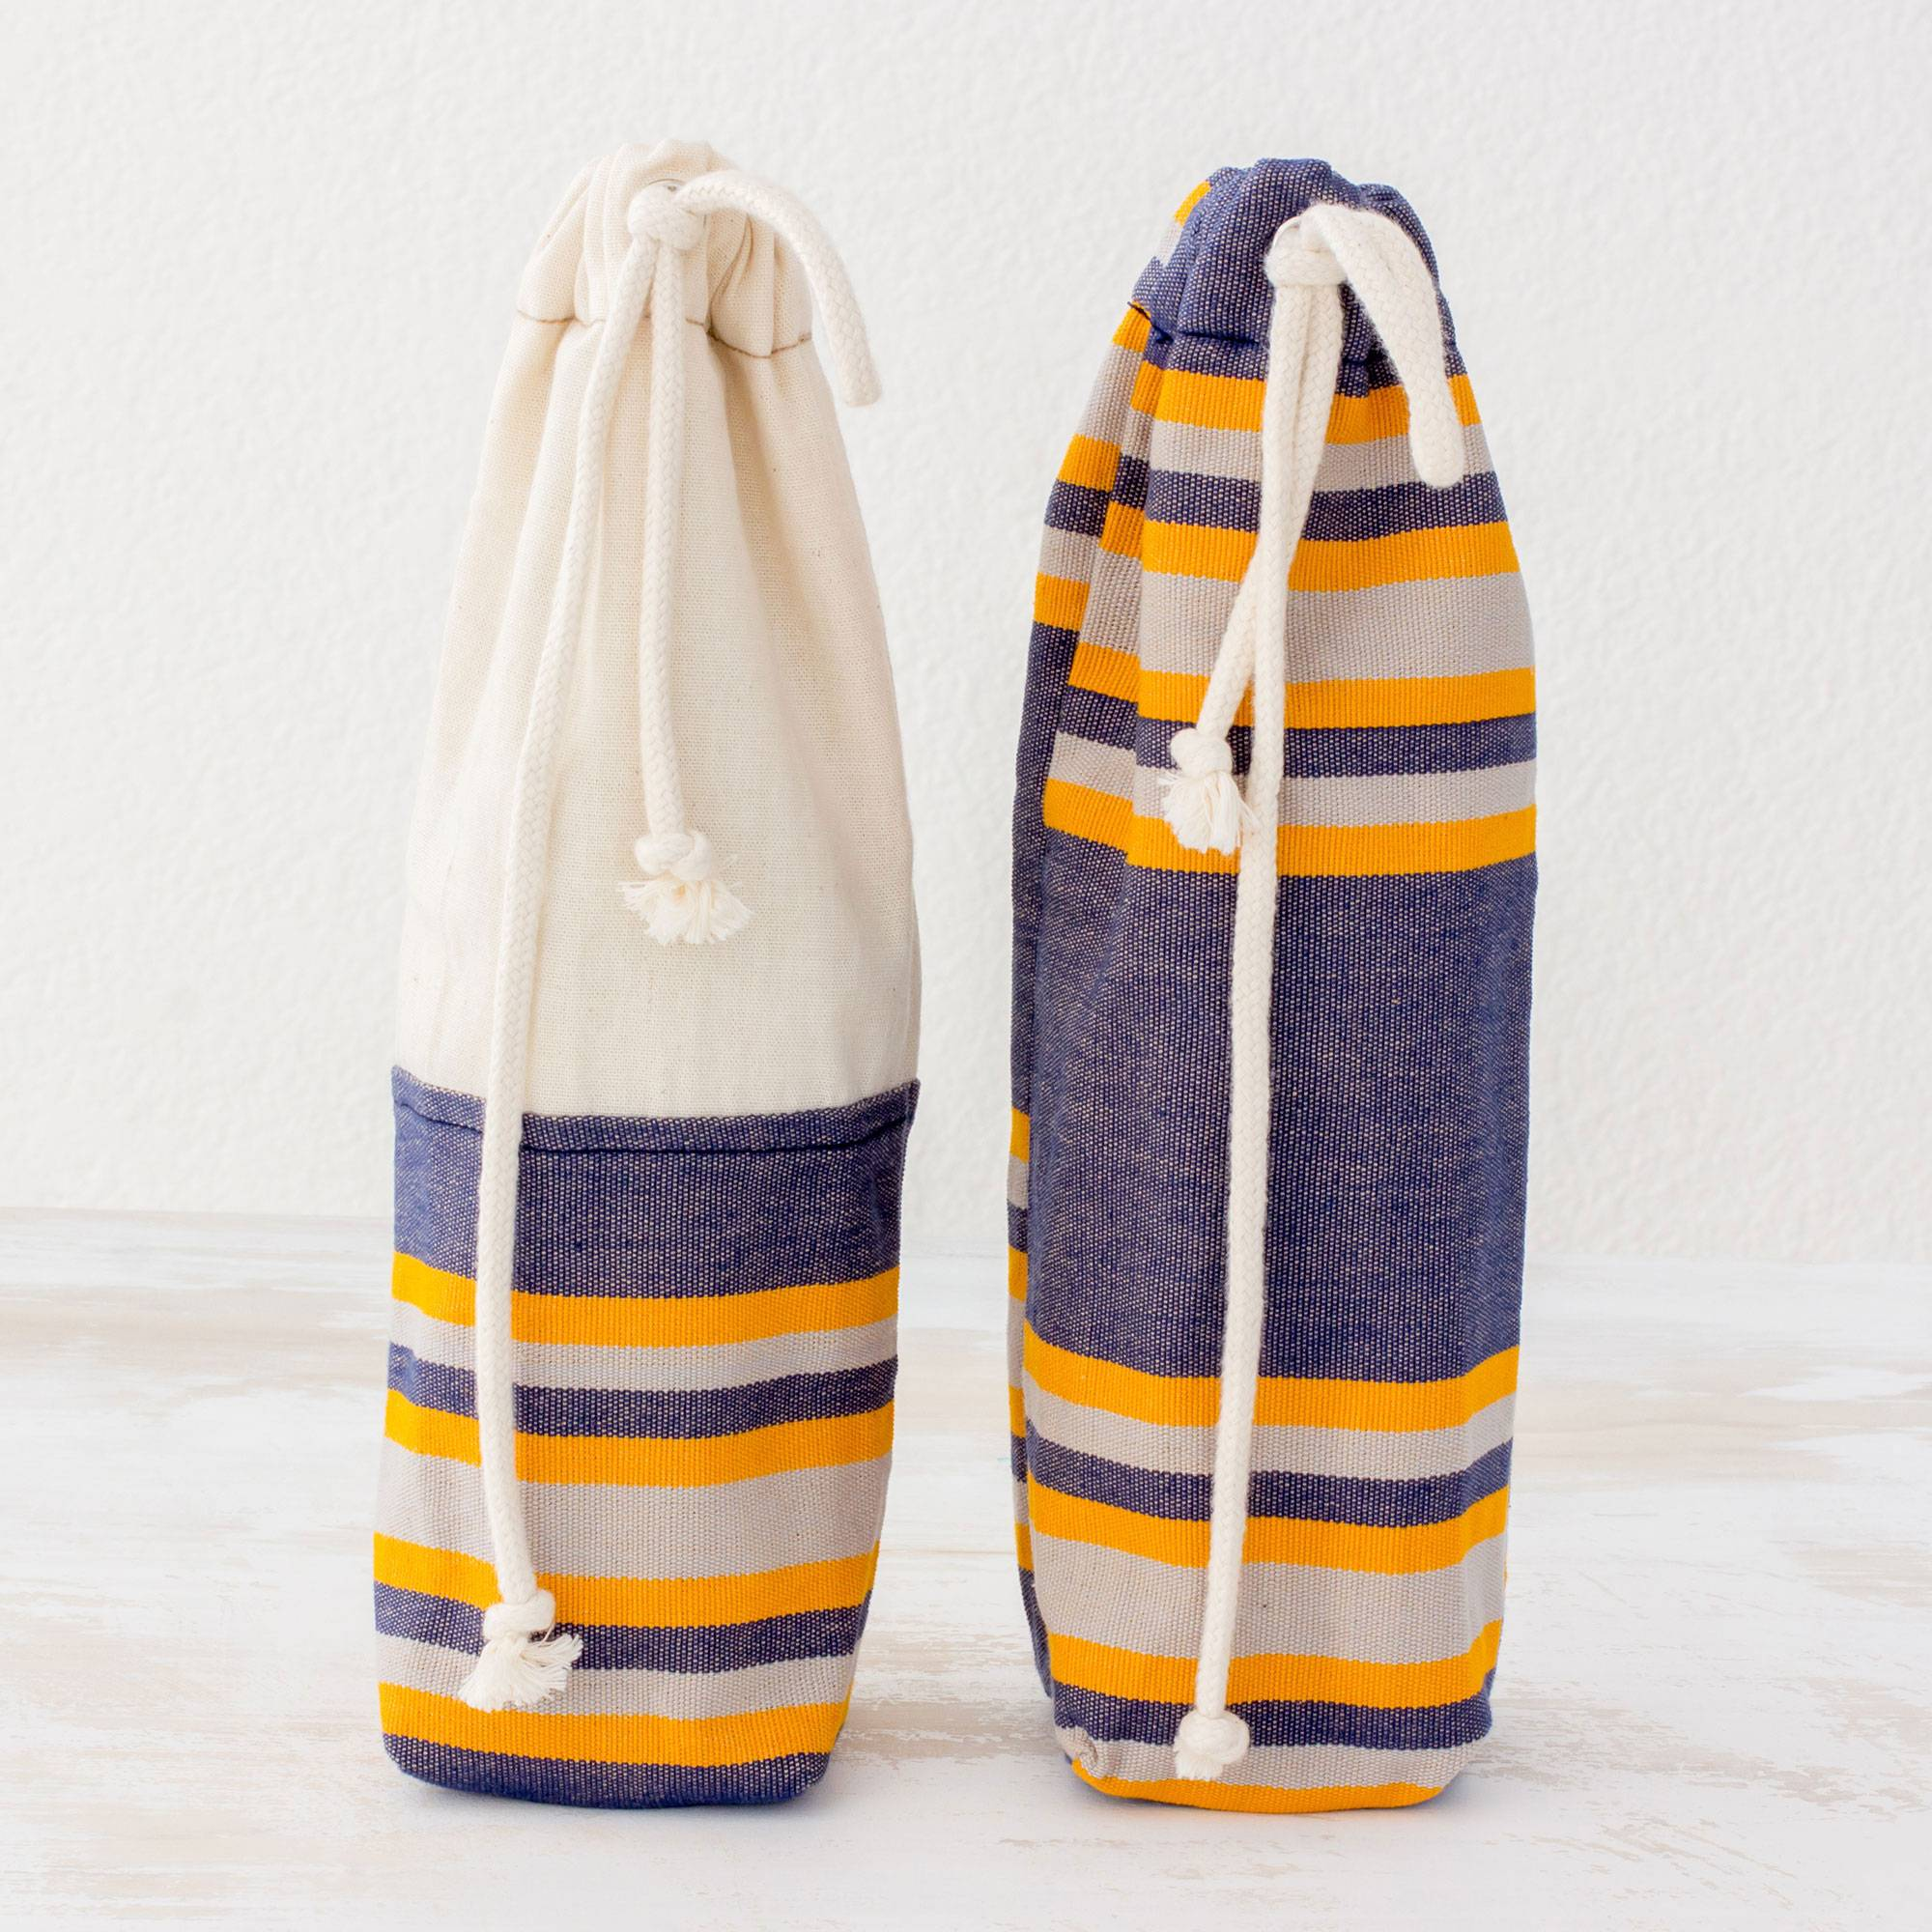 Pleasant Day Two Handwoven Cotton Wine Bags in Indigo